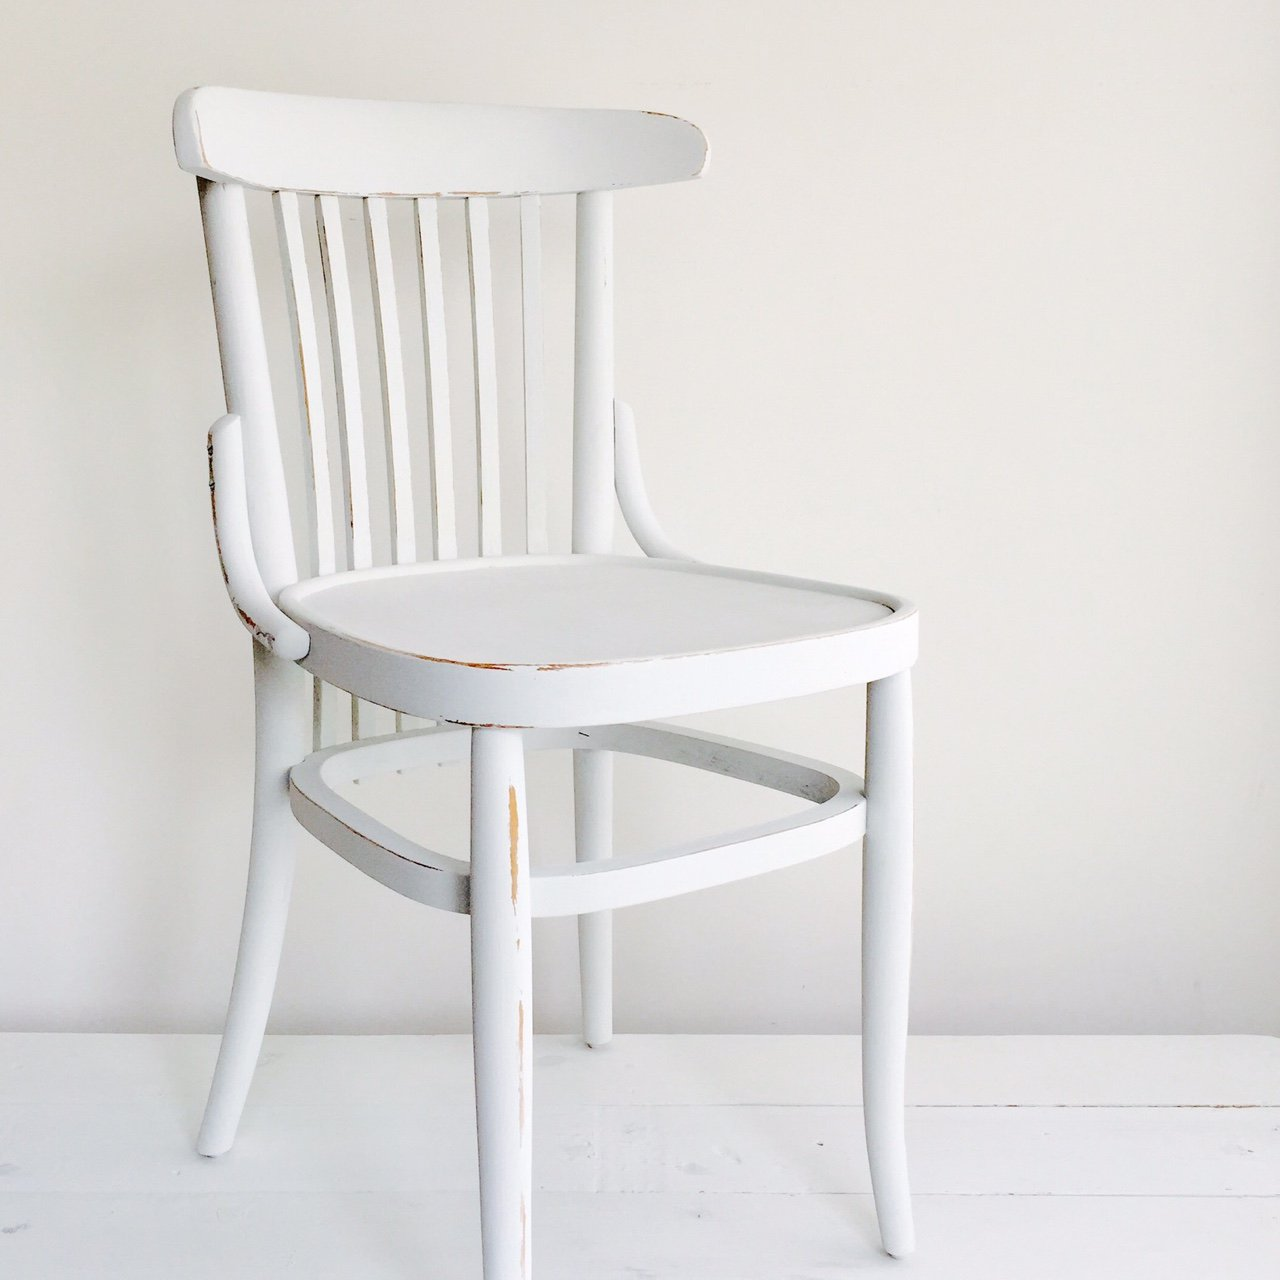 White Bistro Chairs Listed On Depop By Labaan